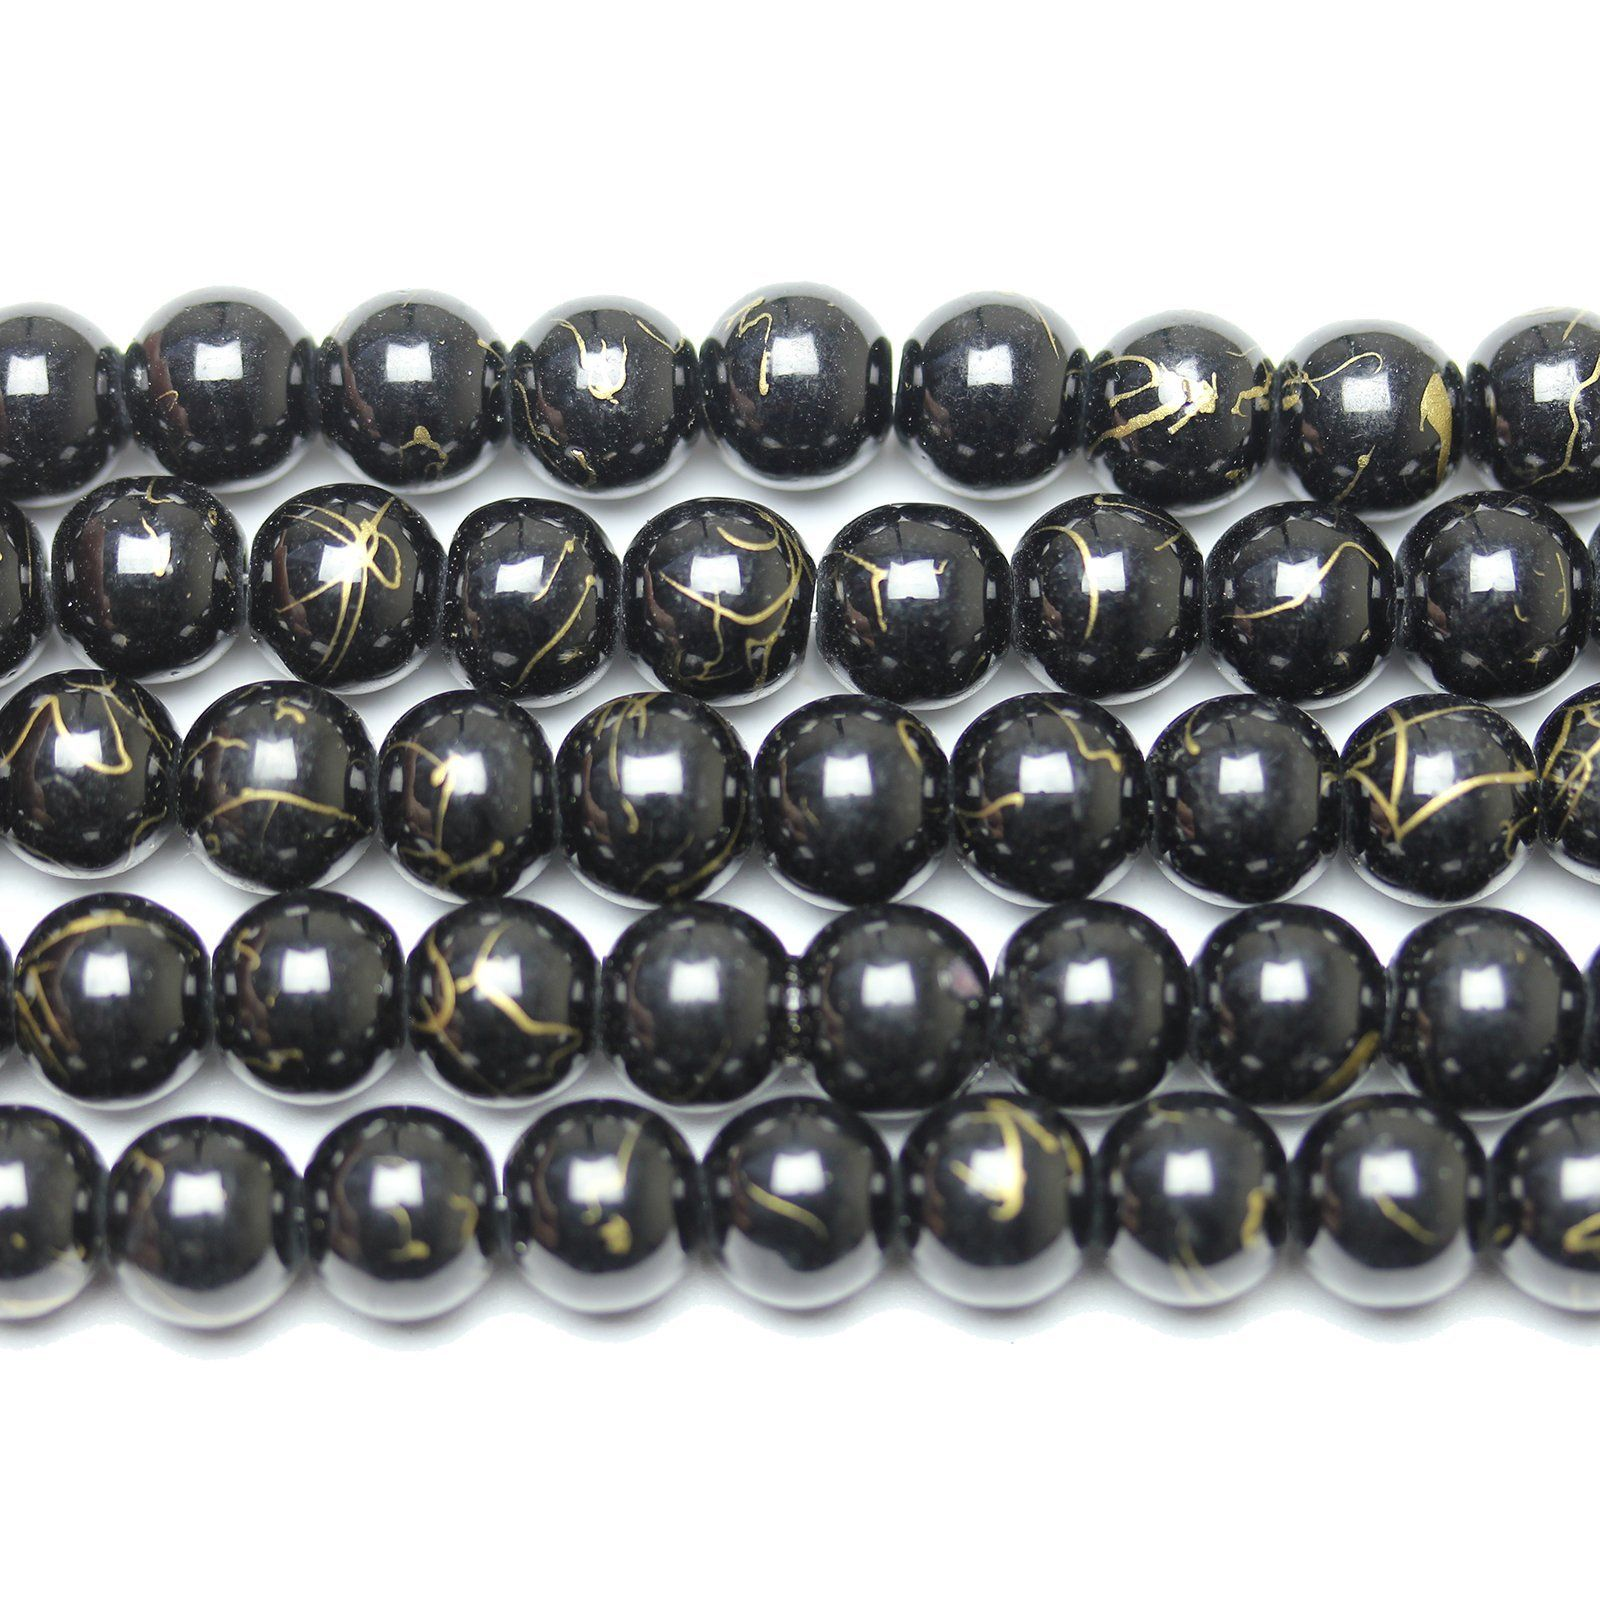 COATED BLACK GLASS ROUND JEWELLERY MAKING BEADS